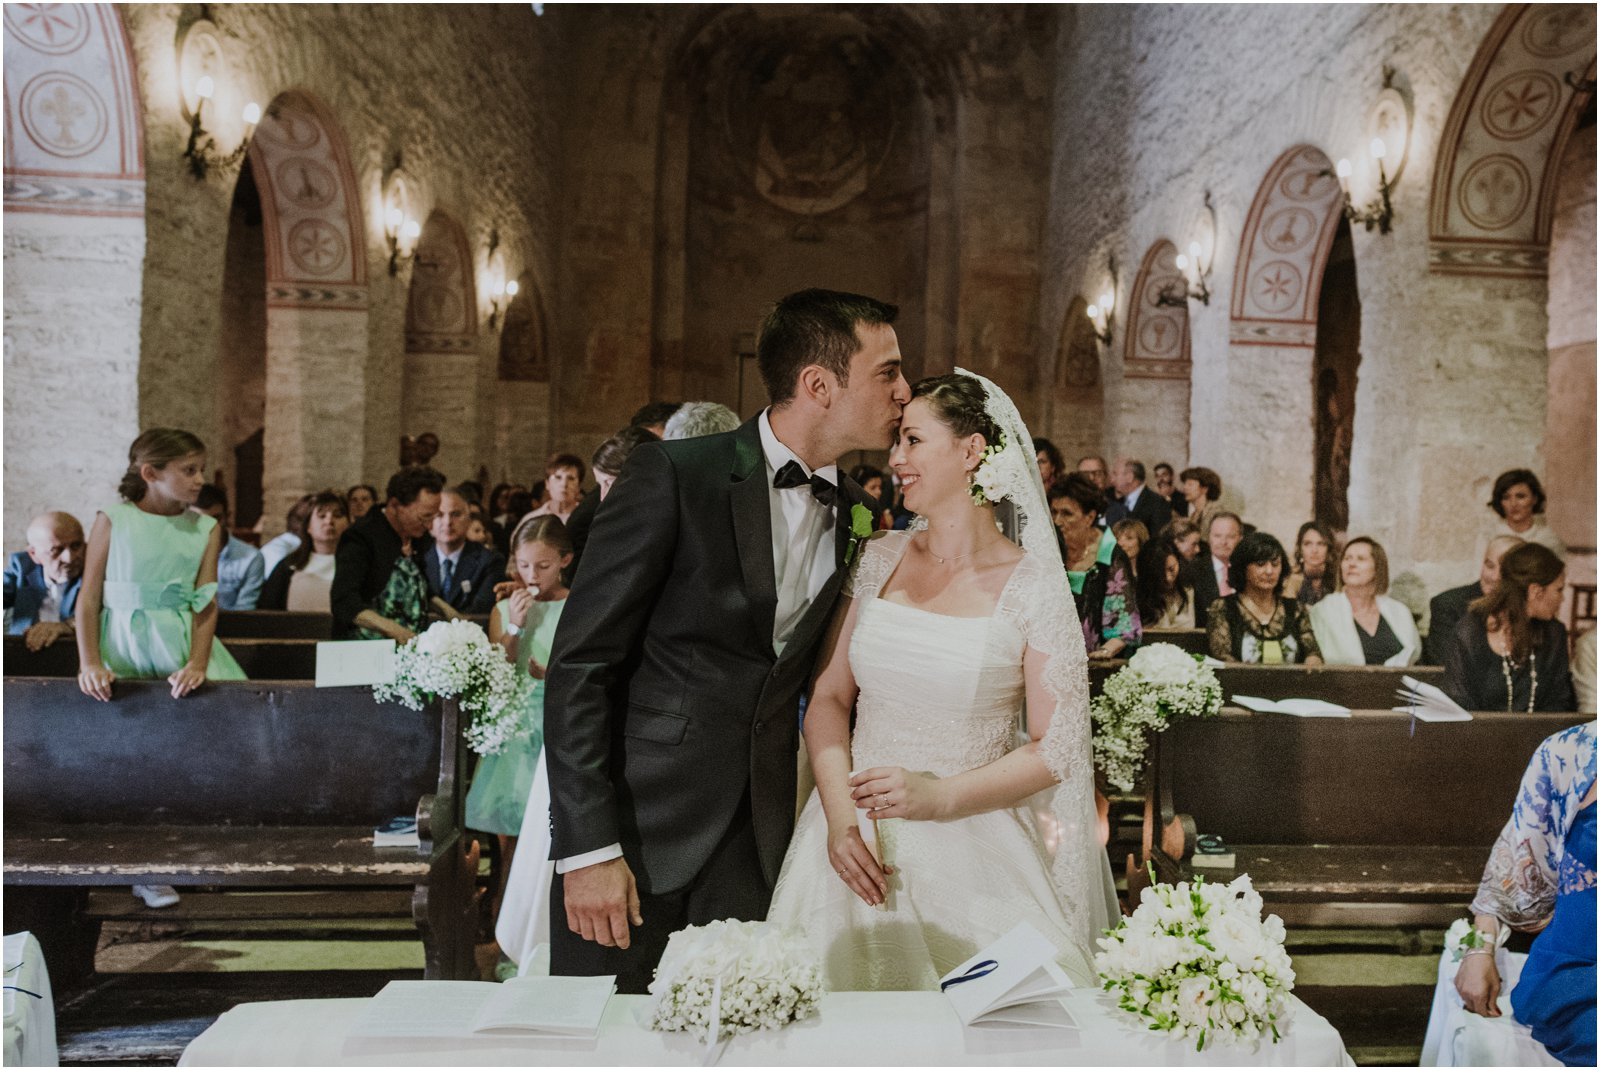 veronasposi foto e video matrimonio verona_0568